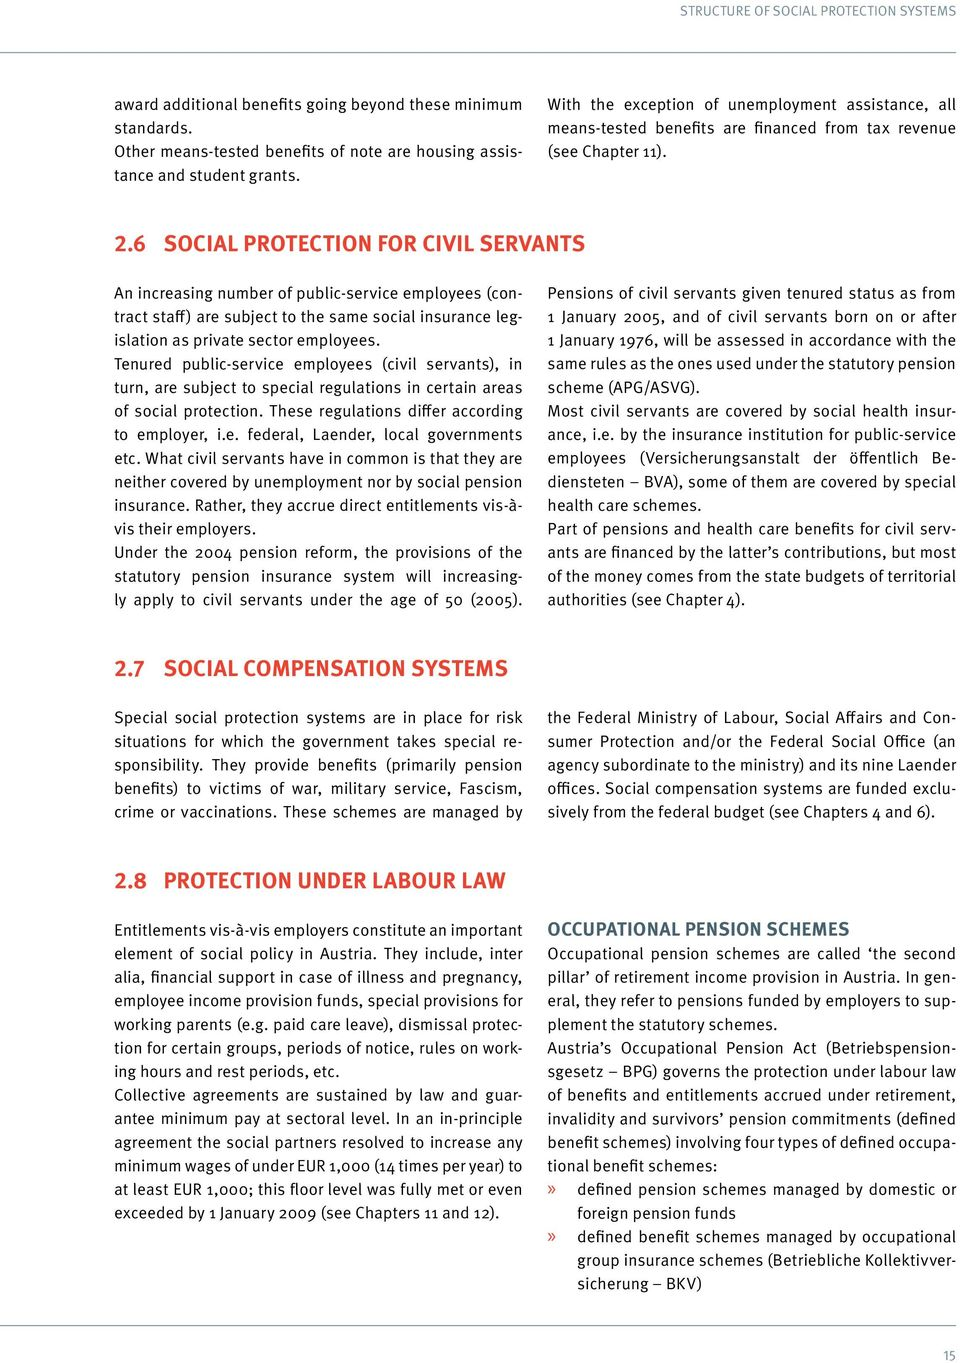 6 Social protection for civil servants An increasing number of public-service employees (contract staff) are subject to the same social insurance legislation as private sector employees.